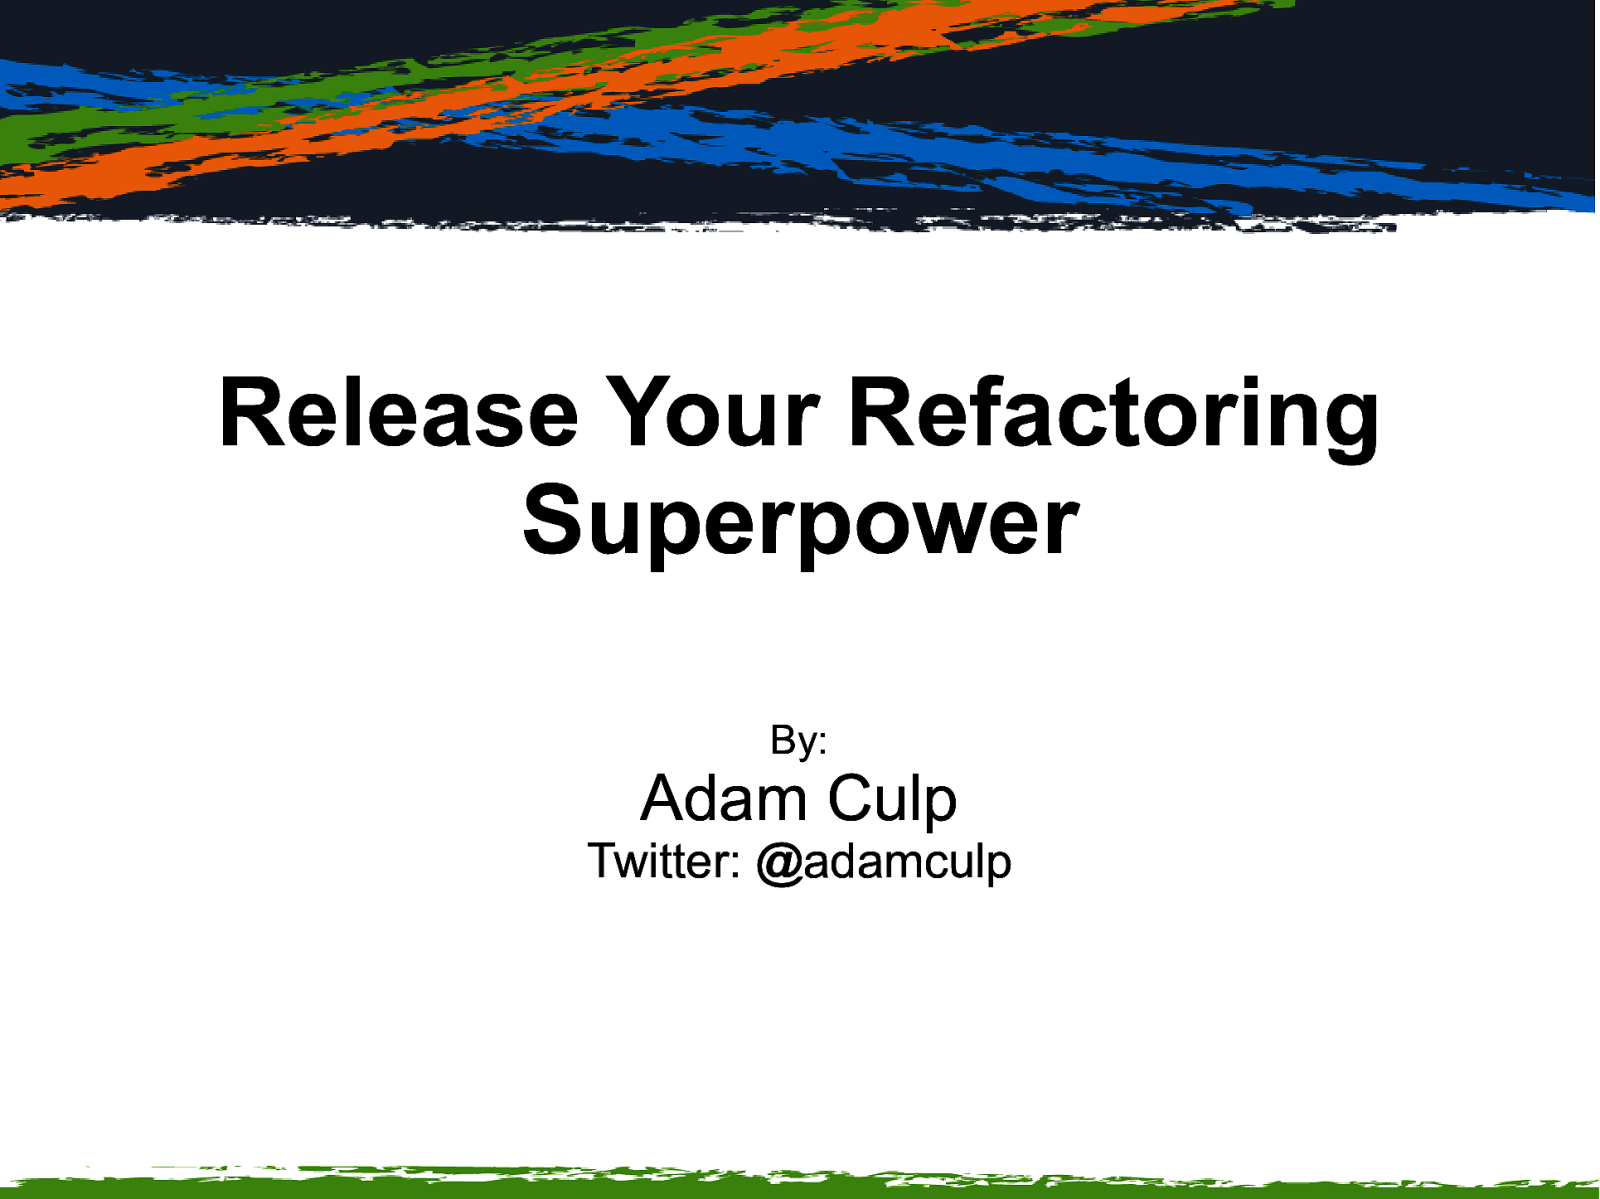 Release Your Refactoring Superpower